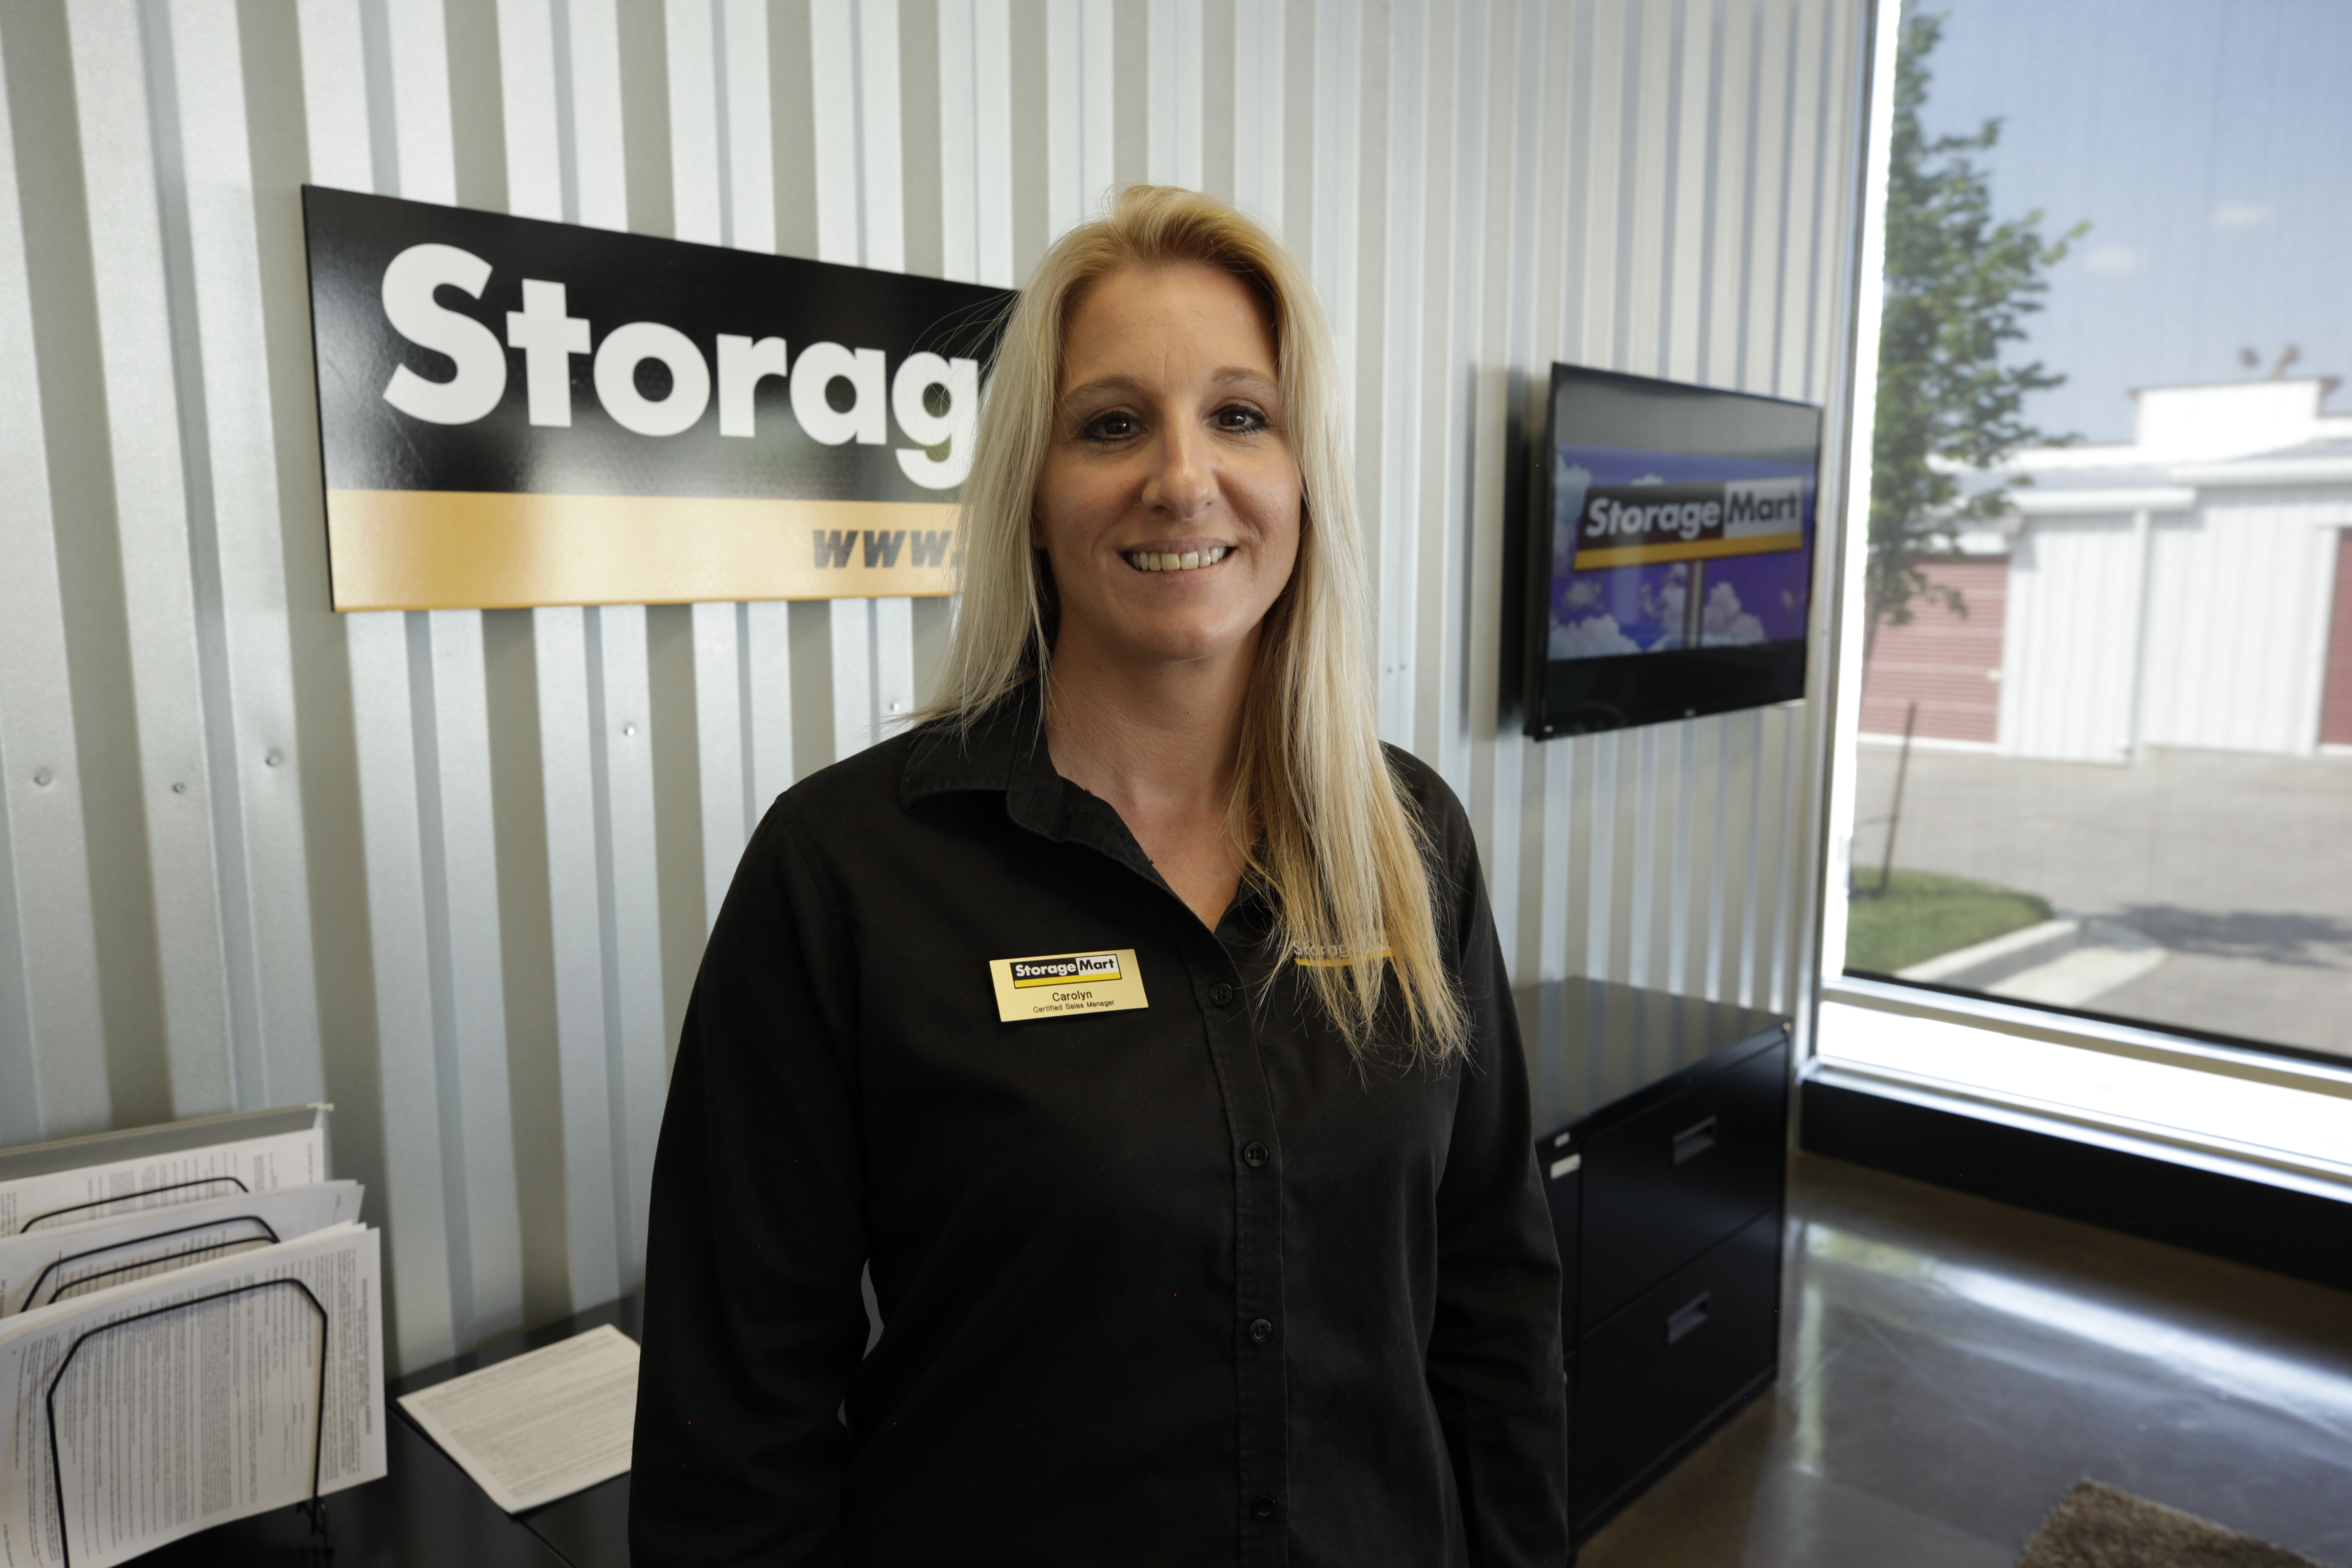 How StorageMart Provides a Mom and Pop Shop Feel